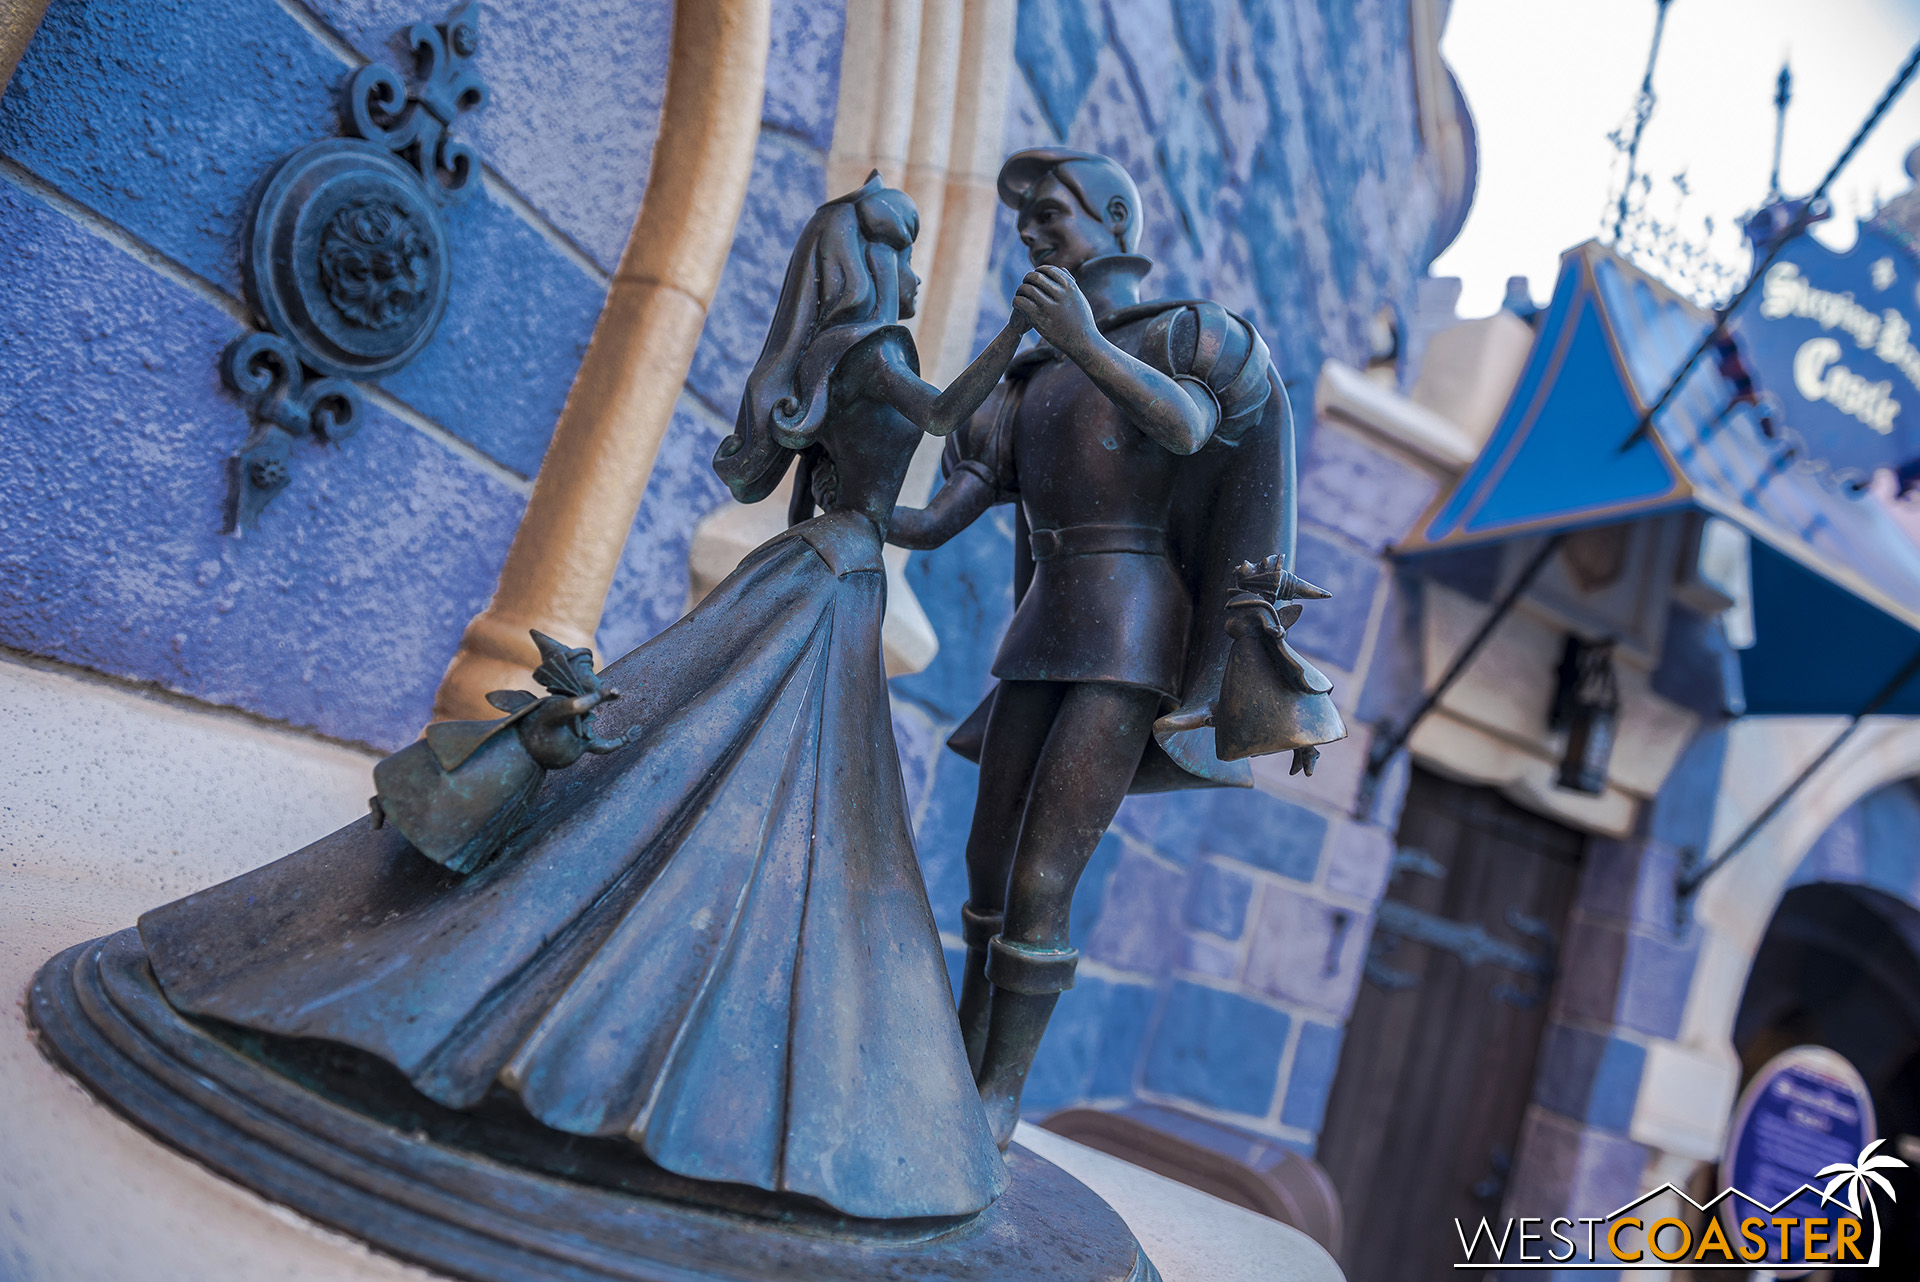 The Sleeping Beauty statue is also back.